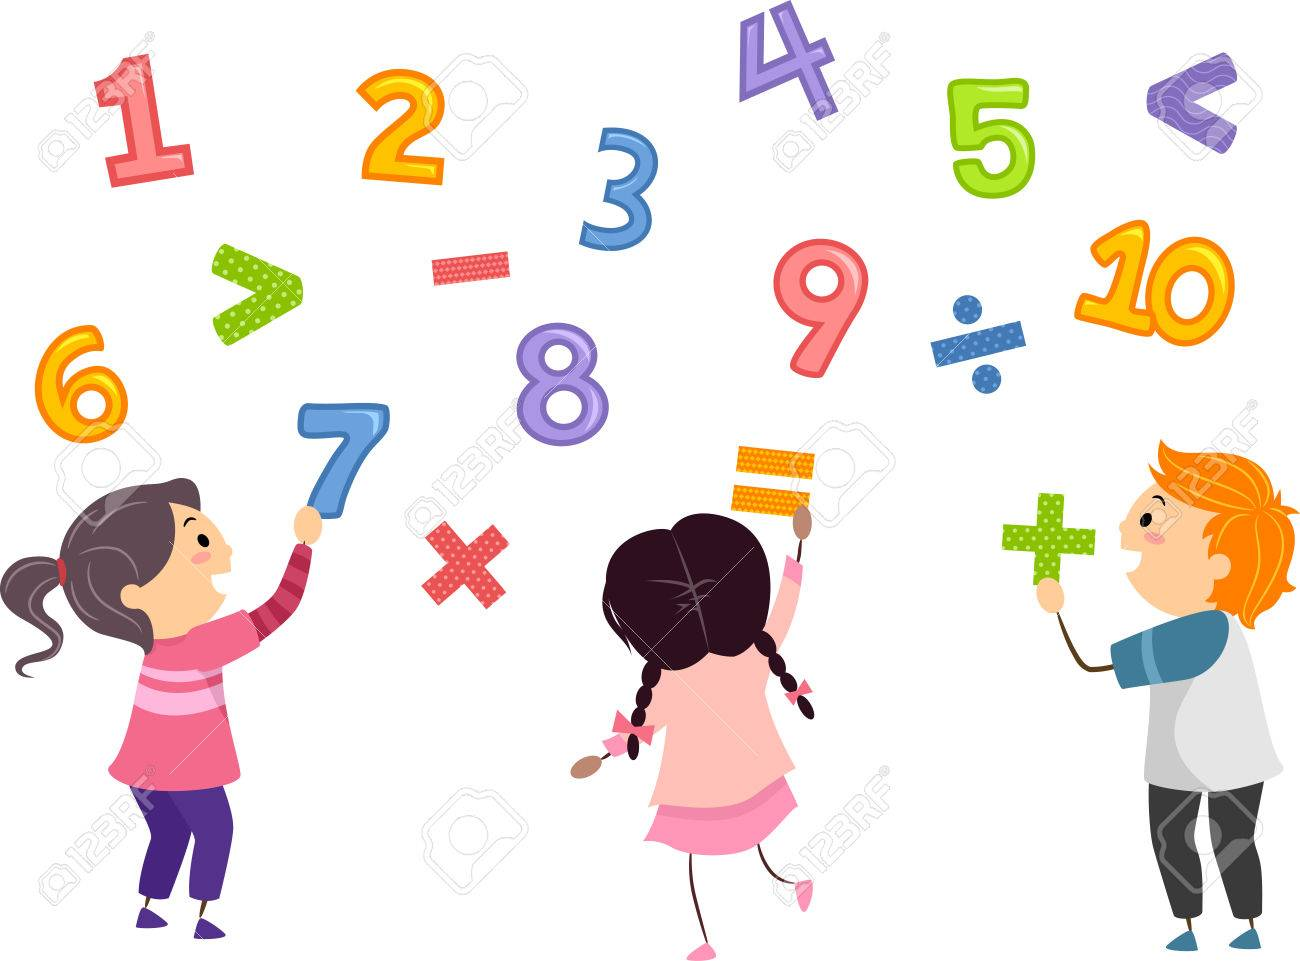 Stickman Illustration Of Preschool Kids Playing With Numbers Stock